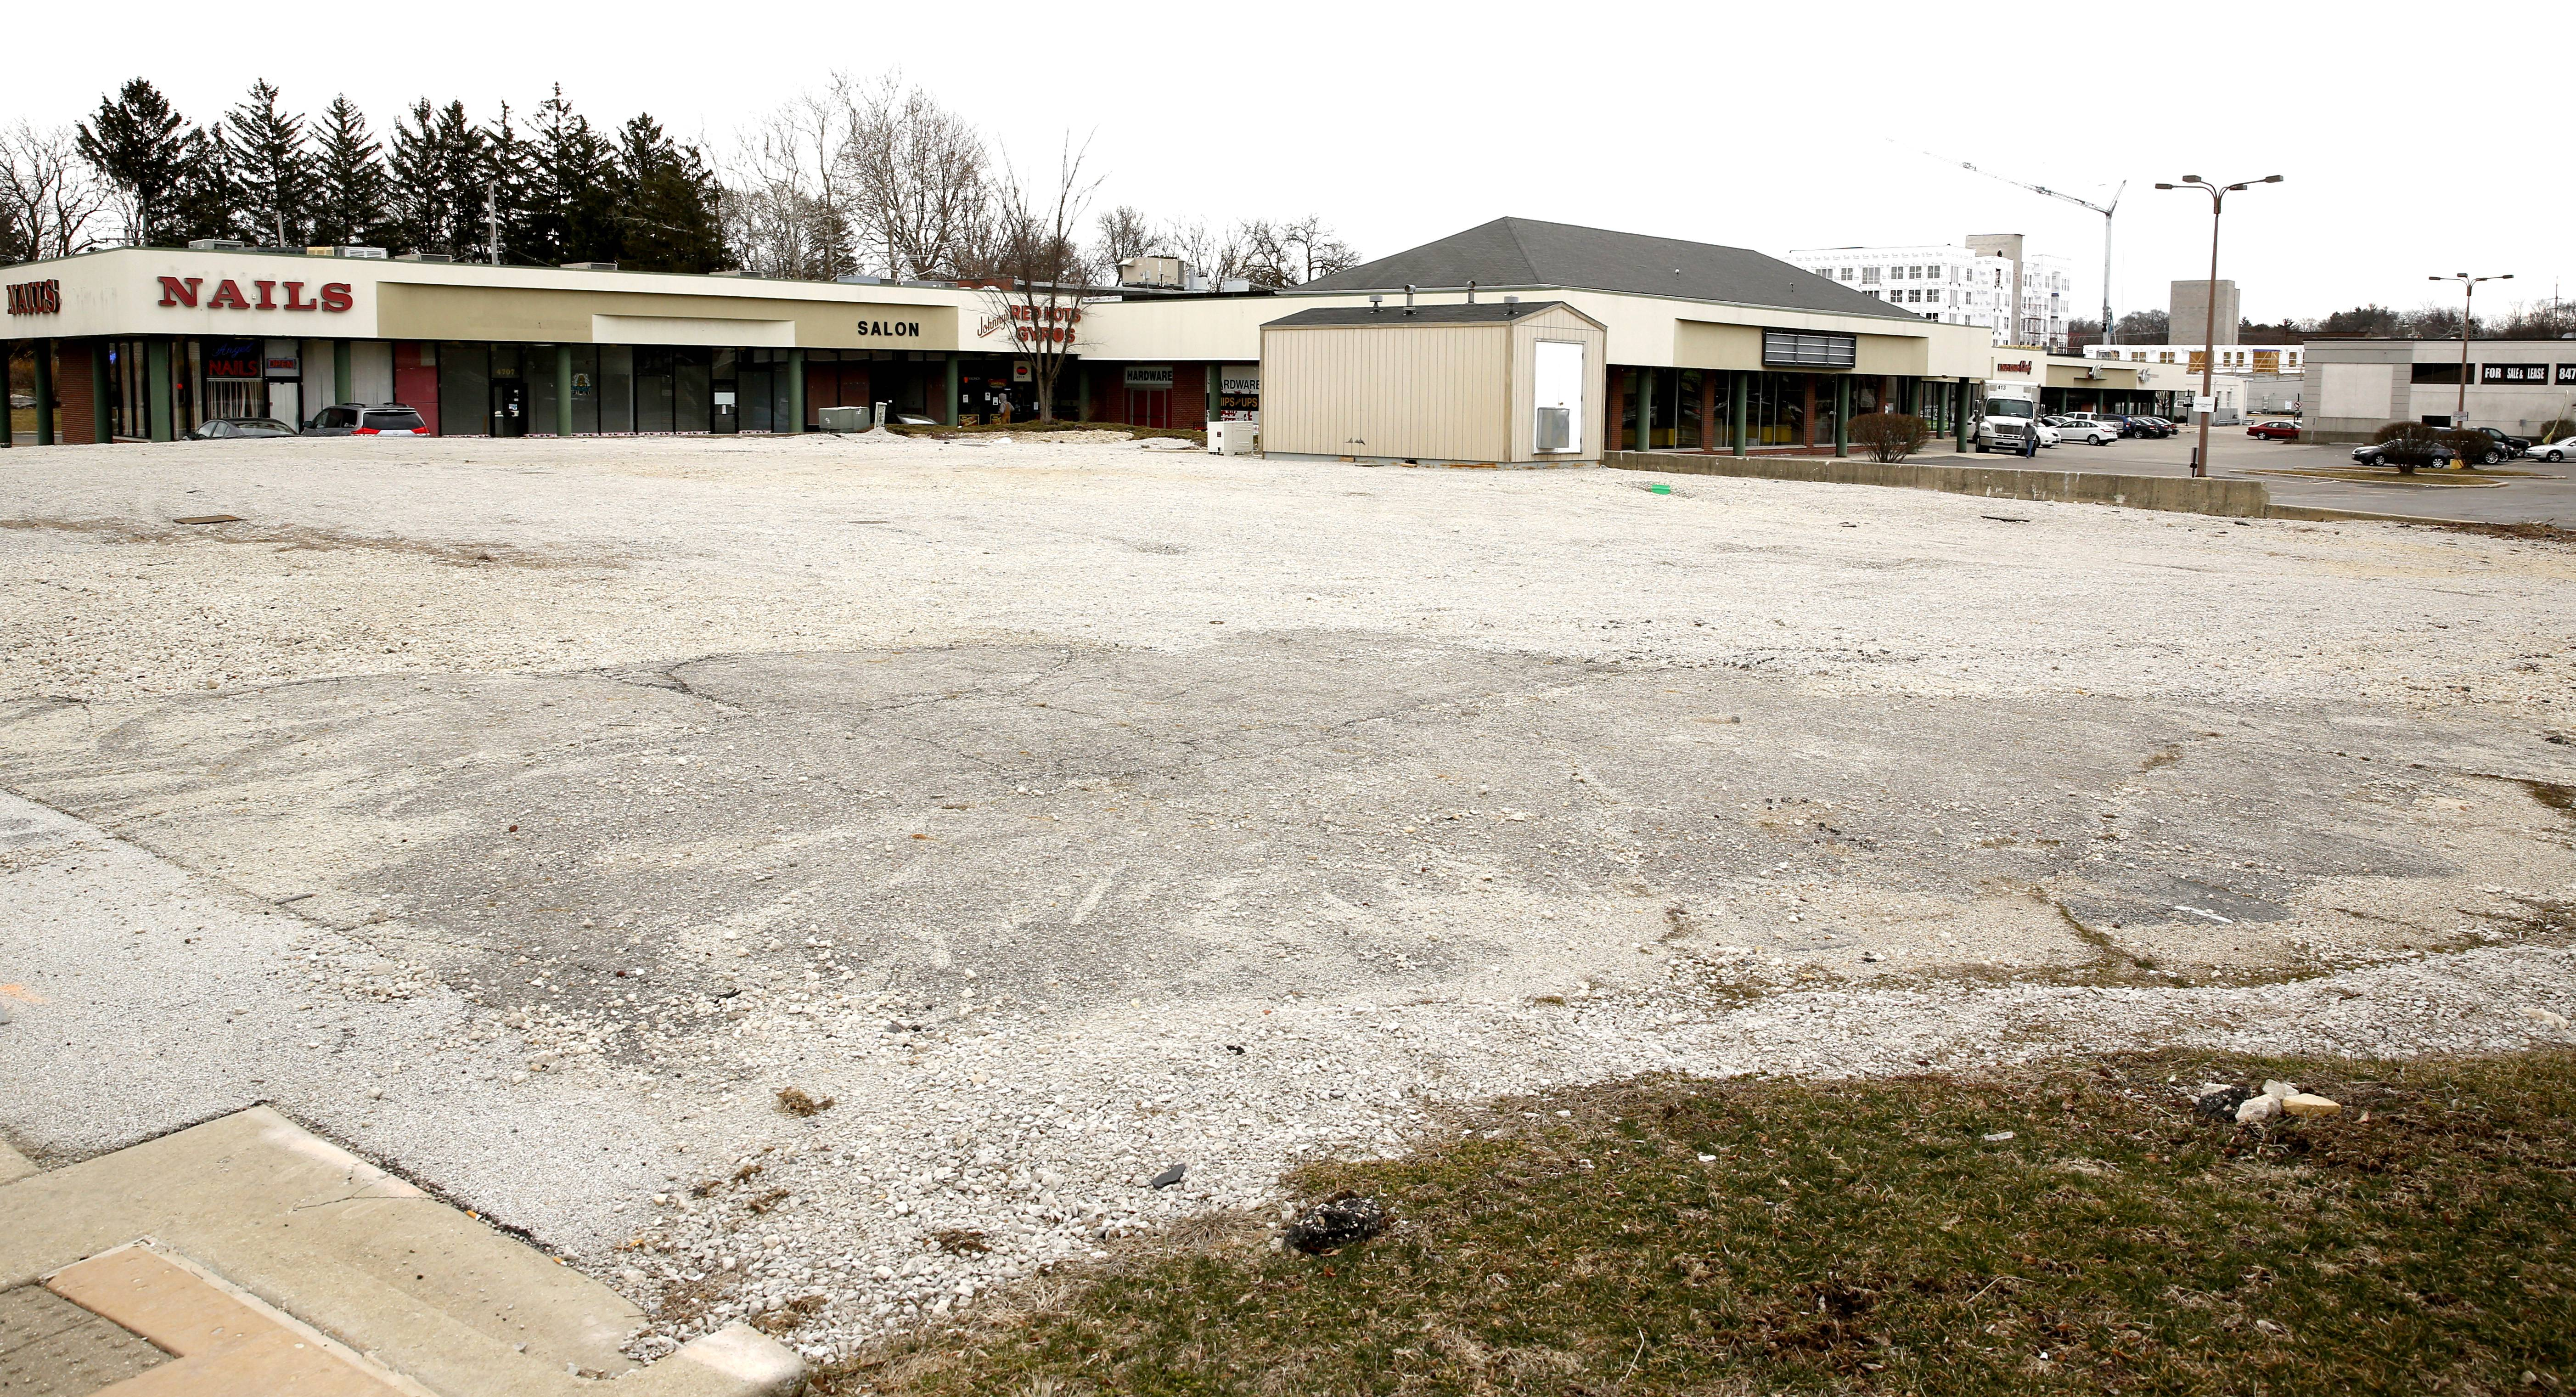 A shopping center at the southeast corner of Main Street and Ogden Avenue in downtown Lisle could be torn down to make room for a mixed-use development featuring apartments and about 37,000 square feet of retail and commercial space.